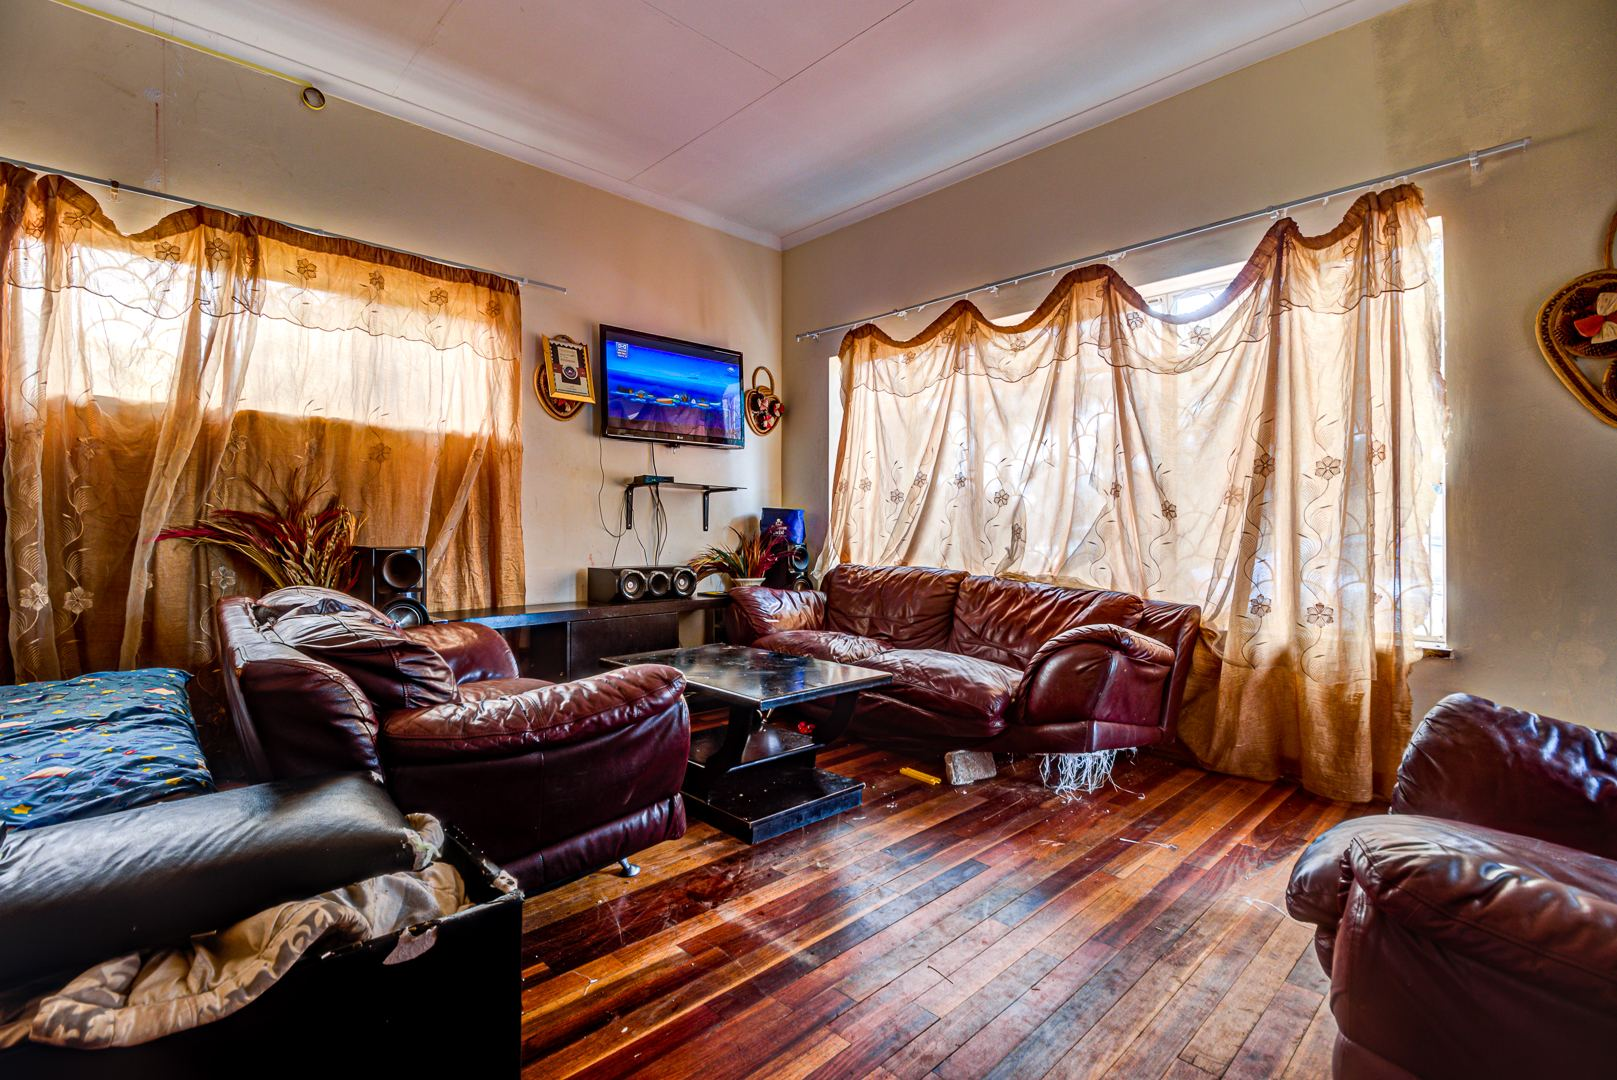 3 Bedroom House For Sale in Kempton Park Central